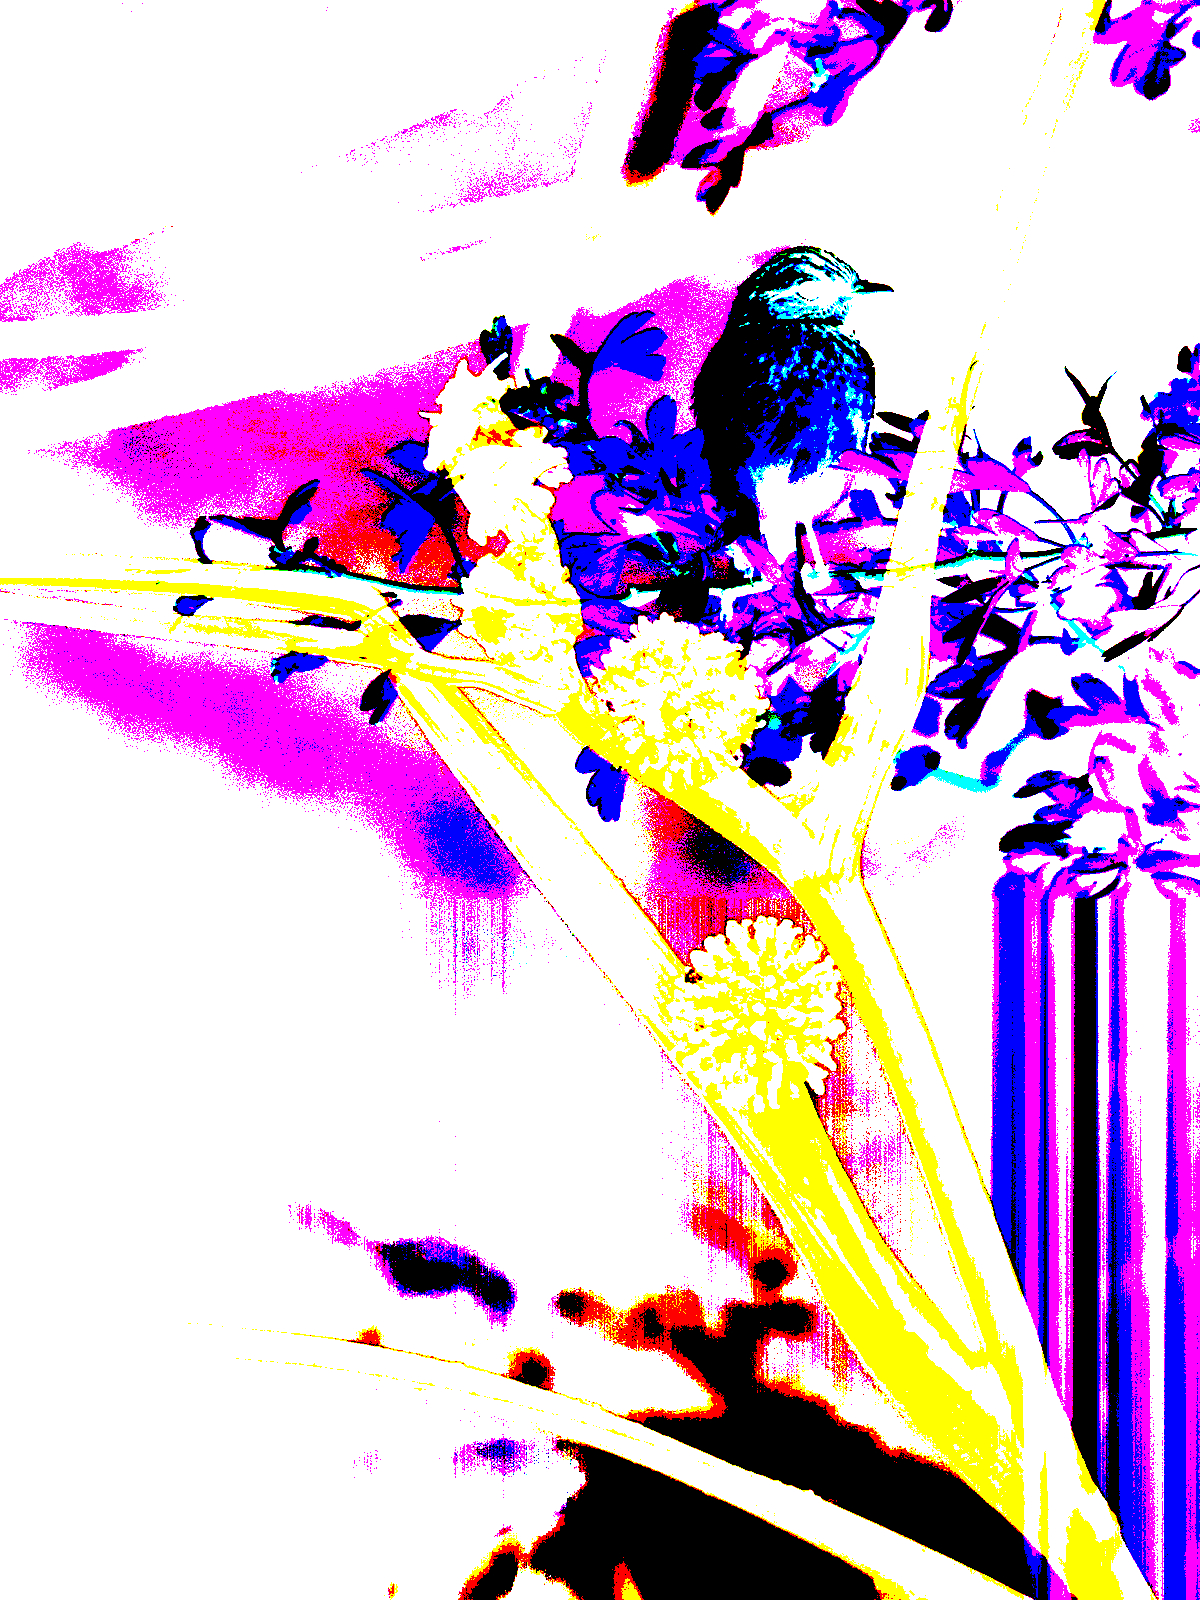 bird on a tree, layered image. pink, blue & yellow